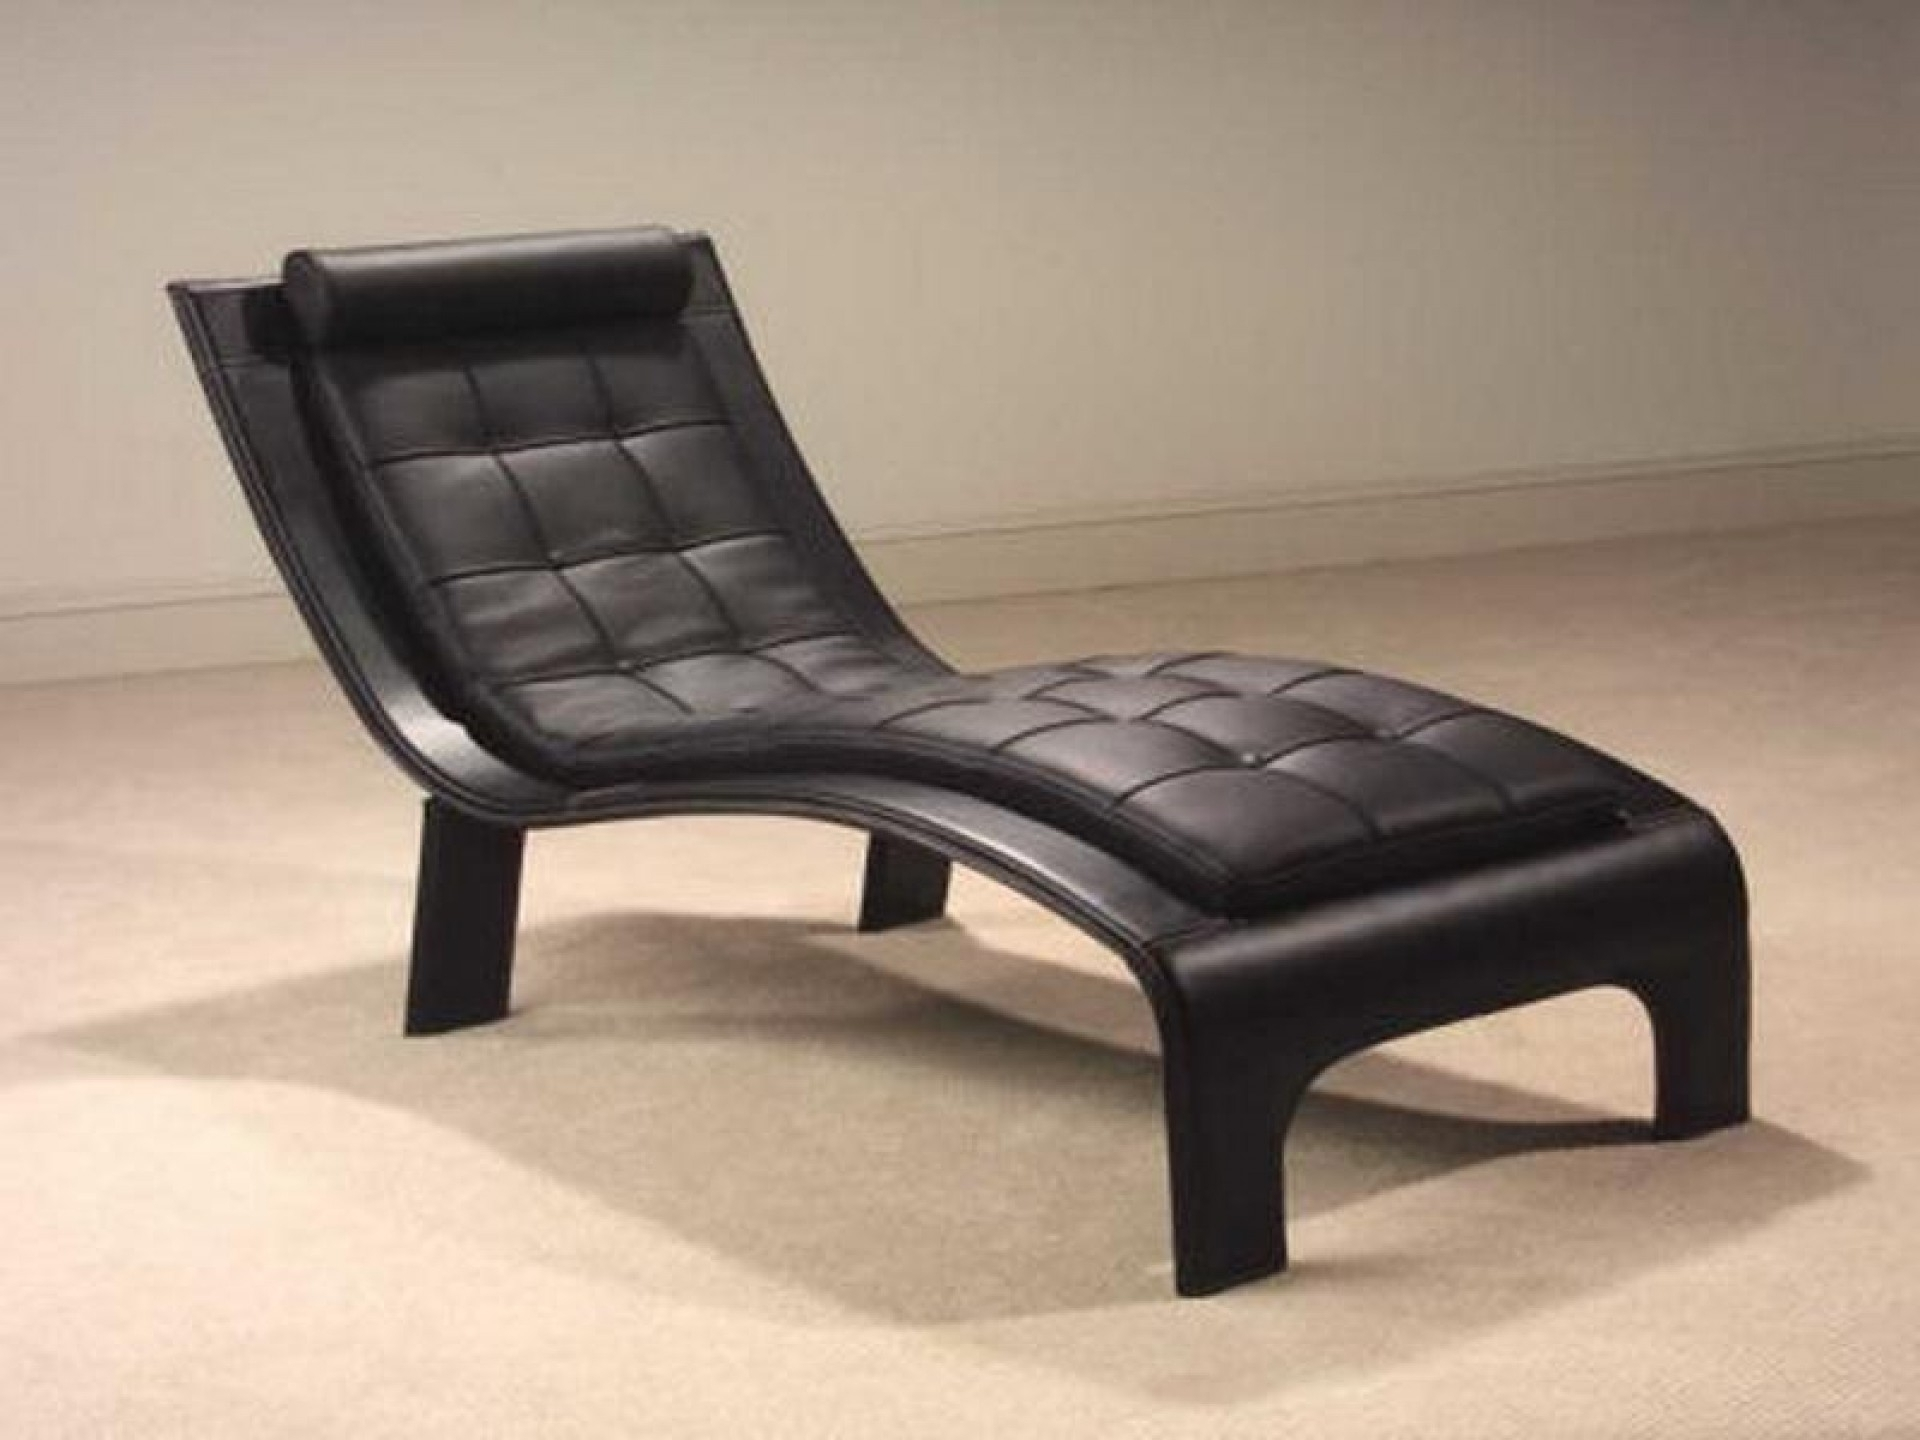 Popular Black Leather Chaise Lounge Chairs • Lounge Chairs Ideas With Black Leather Chaises (View 10 of 15)